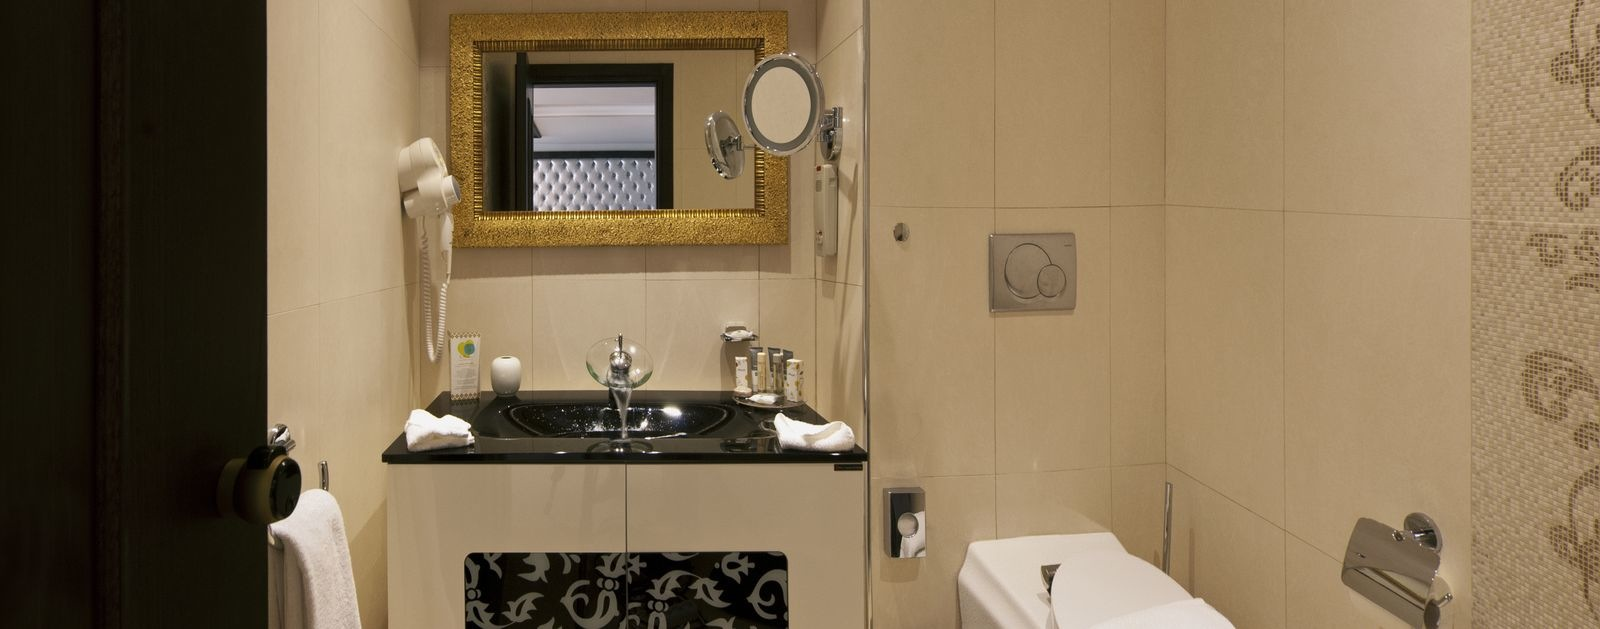 427_La_Marquise_Vip_Presidential_Suite_Small_Bathroom_2